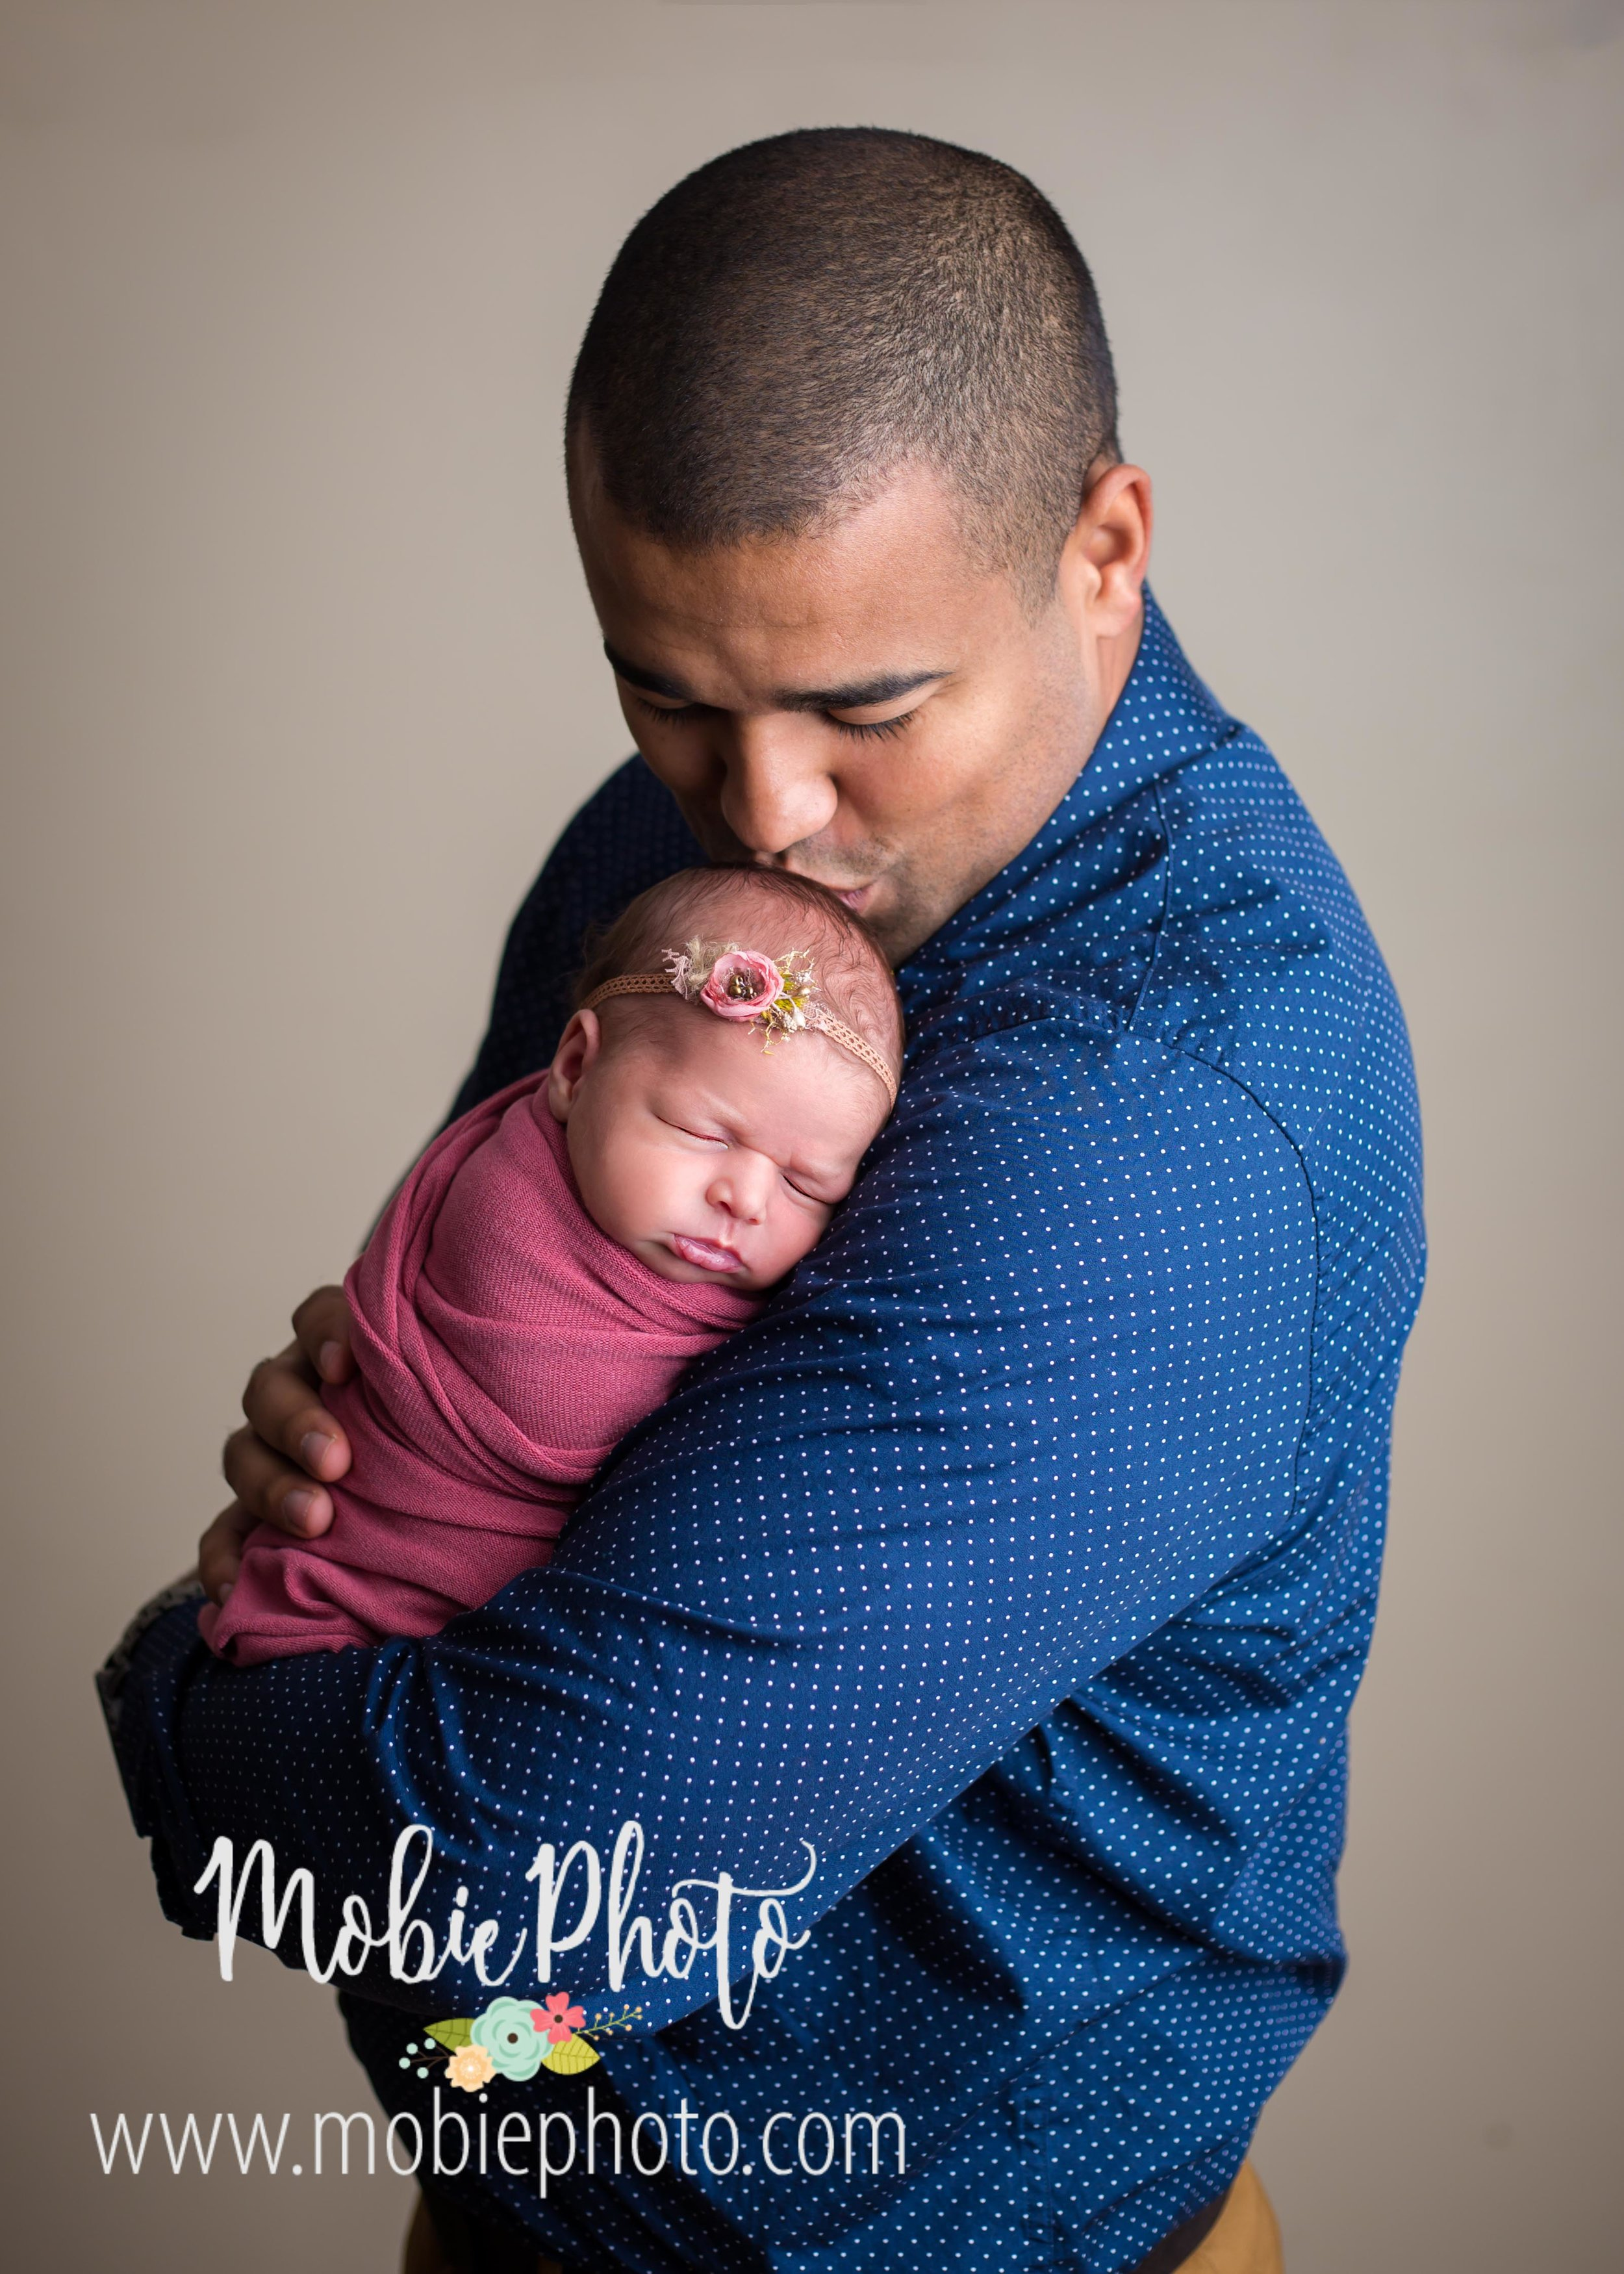 Utah Newborn Photographer - Mobie Photo - Studio located in Lehi, Utah